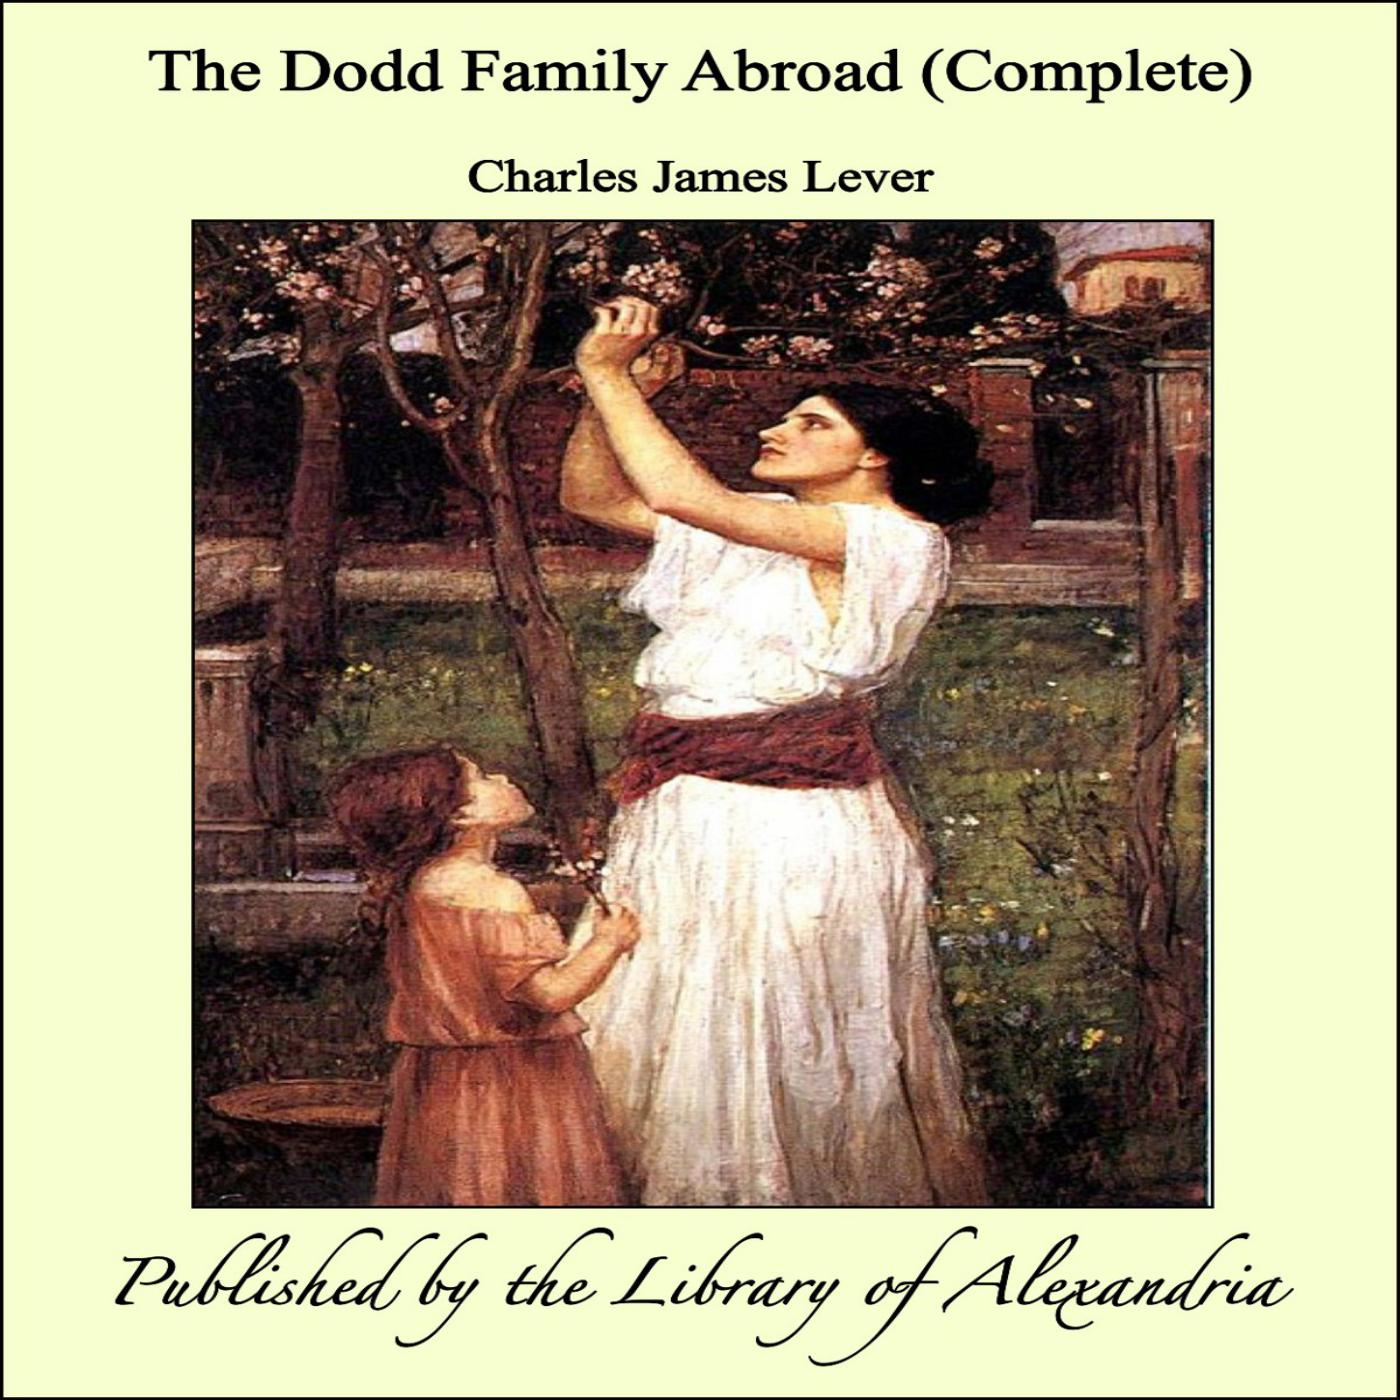 Charles James Lever - The Dodd Family Abroad (Complete)